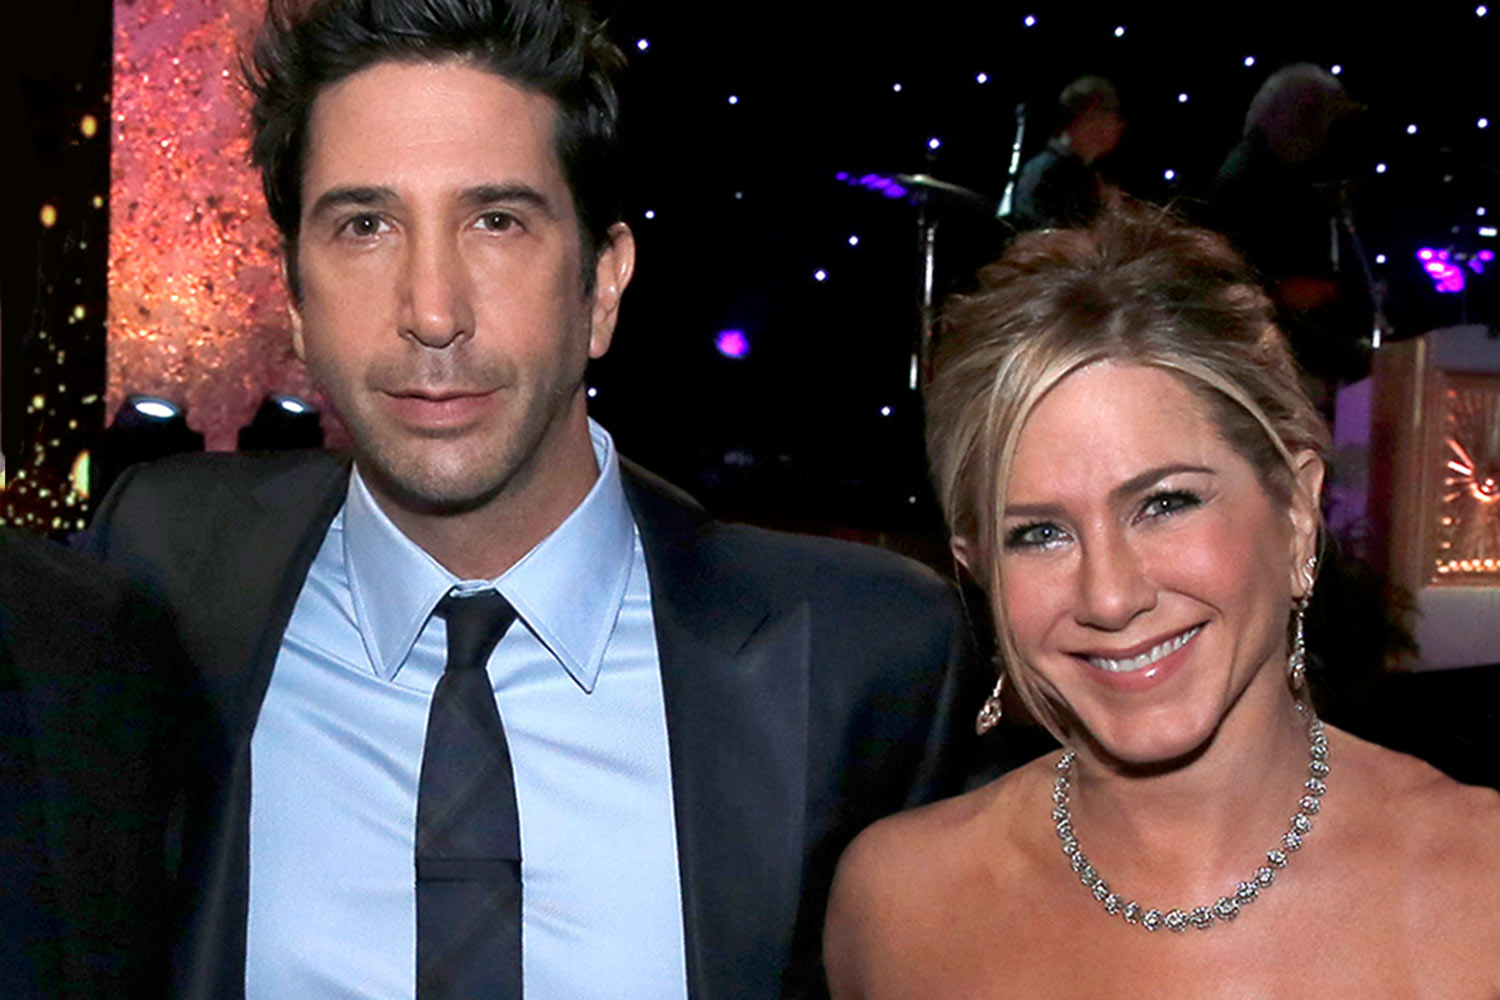 Jennifer Aniston and David Schwimmer on Their Romantic Chemistry at the  'Friends' Reunion